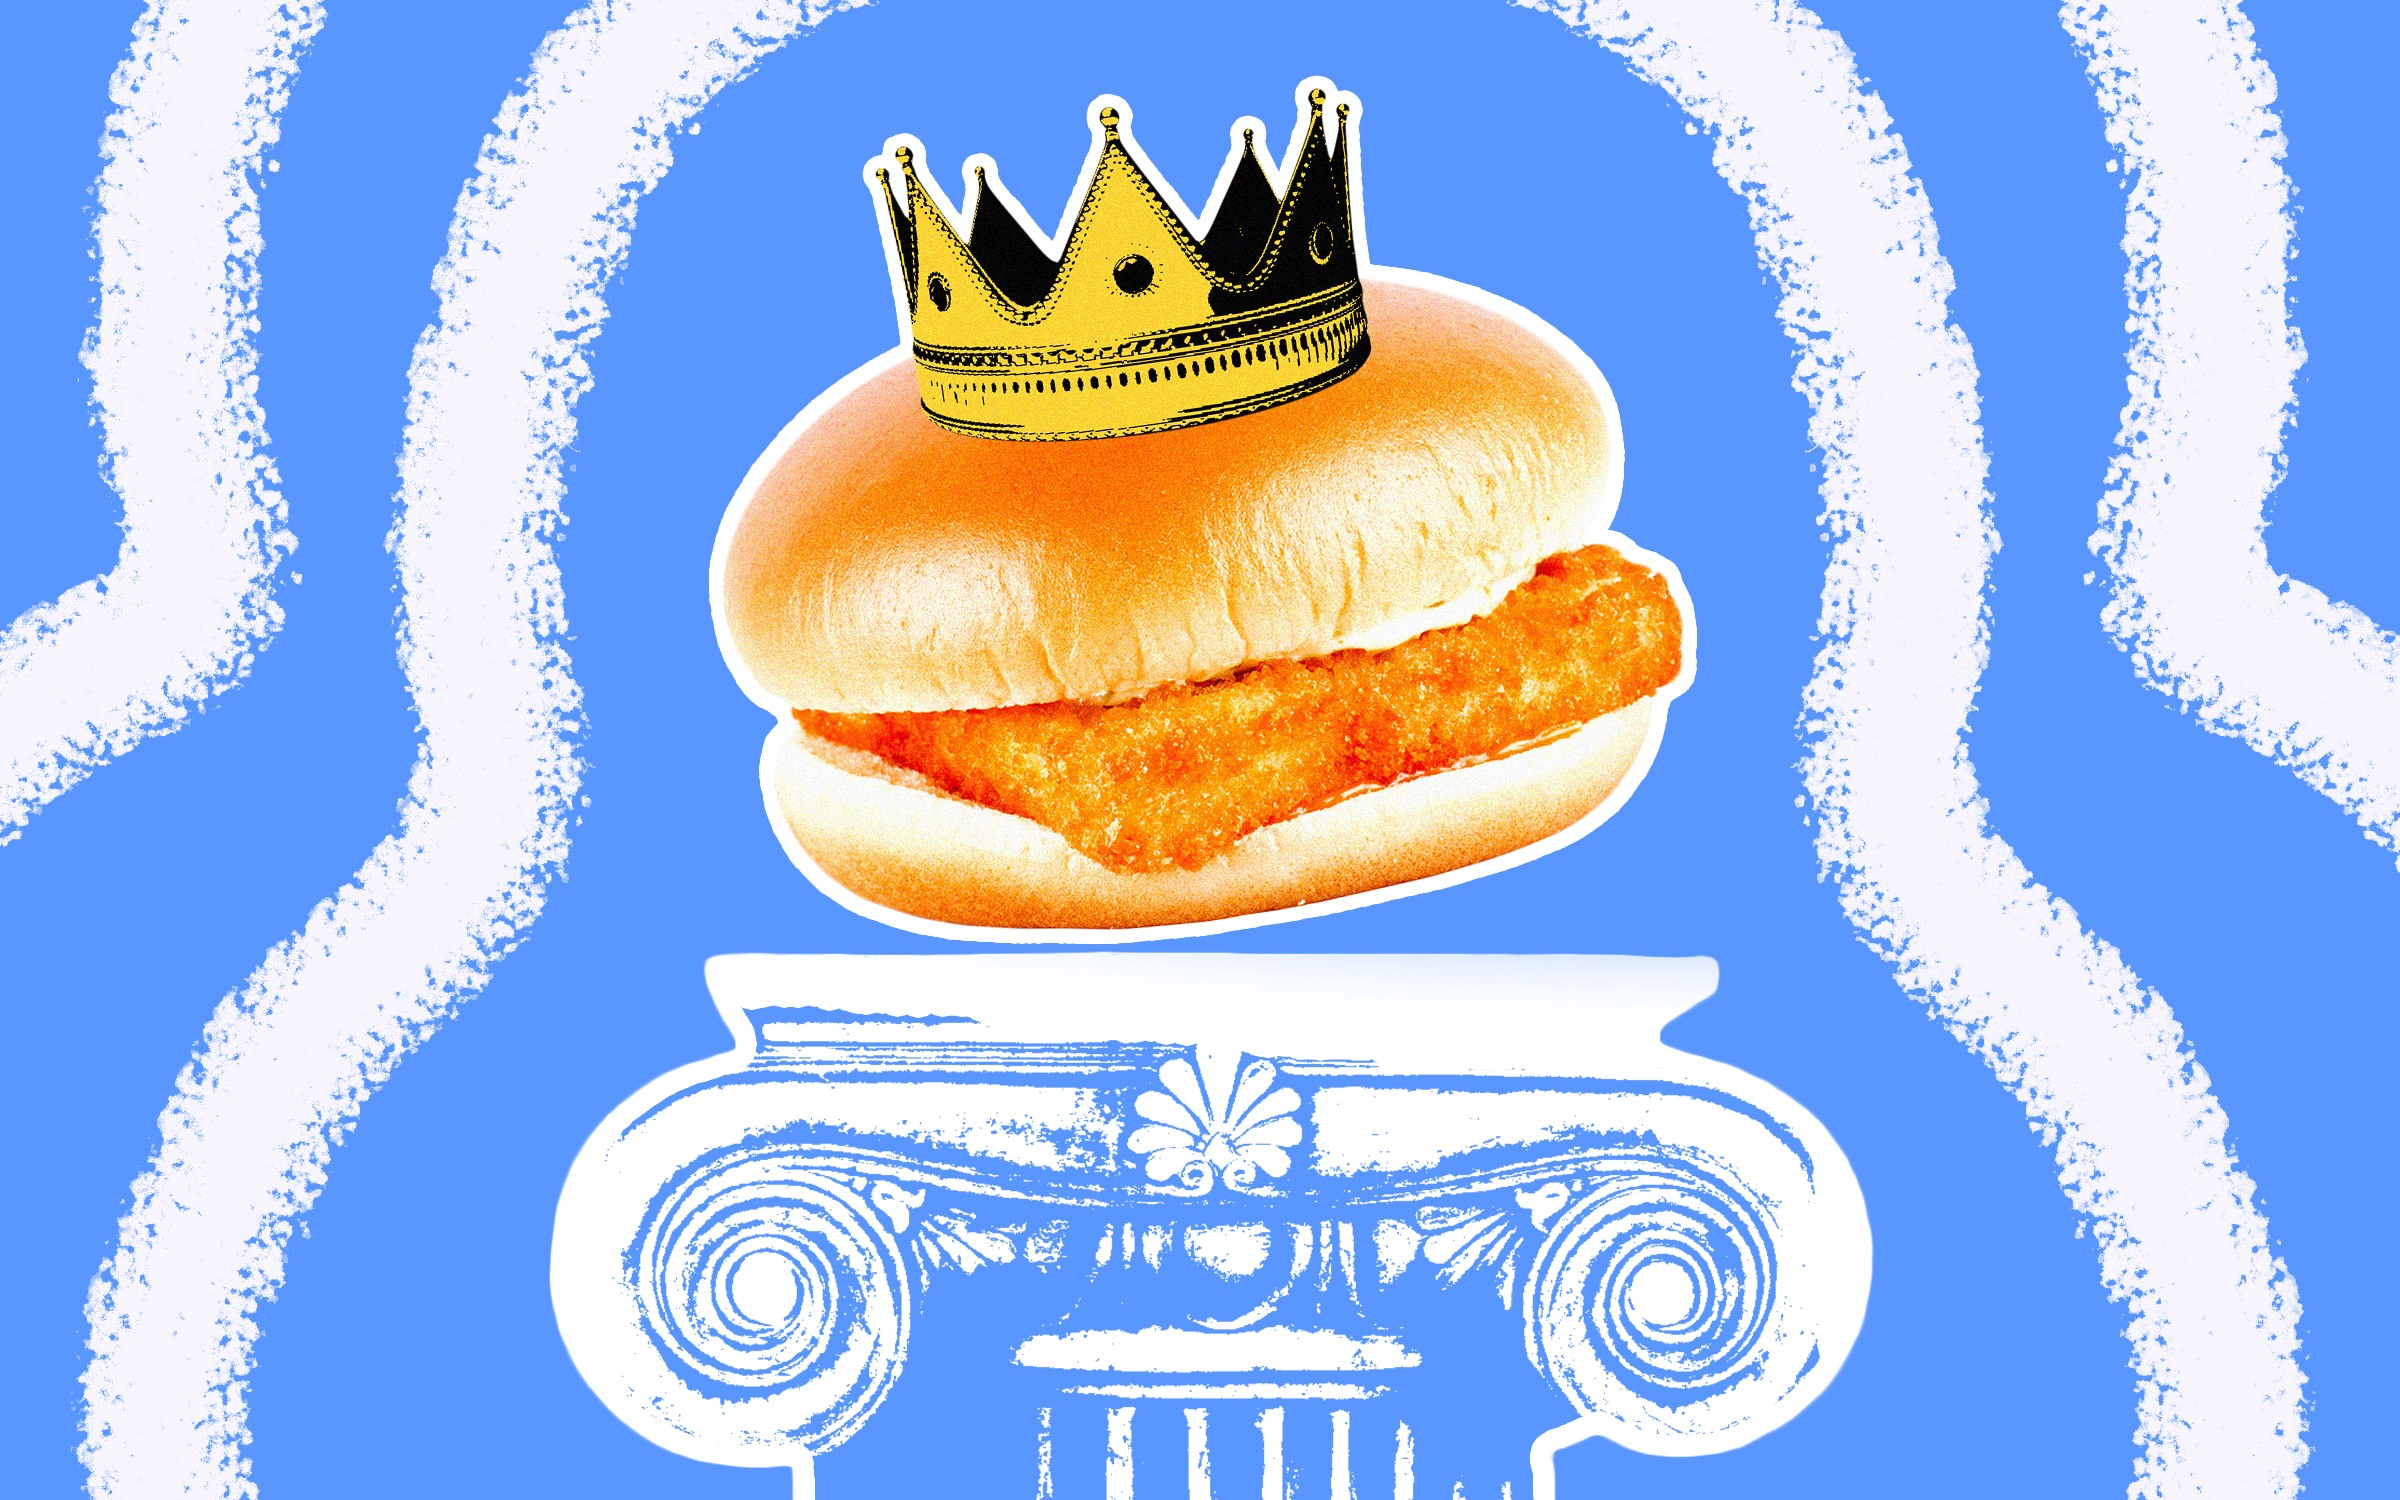 A photo illustration of a generic fish sandwich wearing a crown, placed on a pedestal.